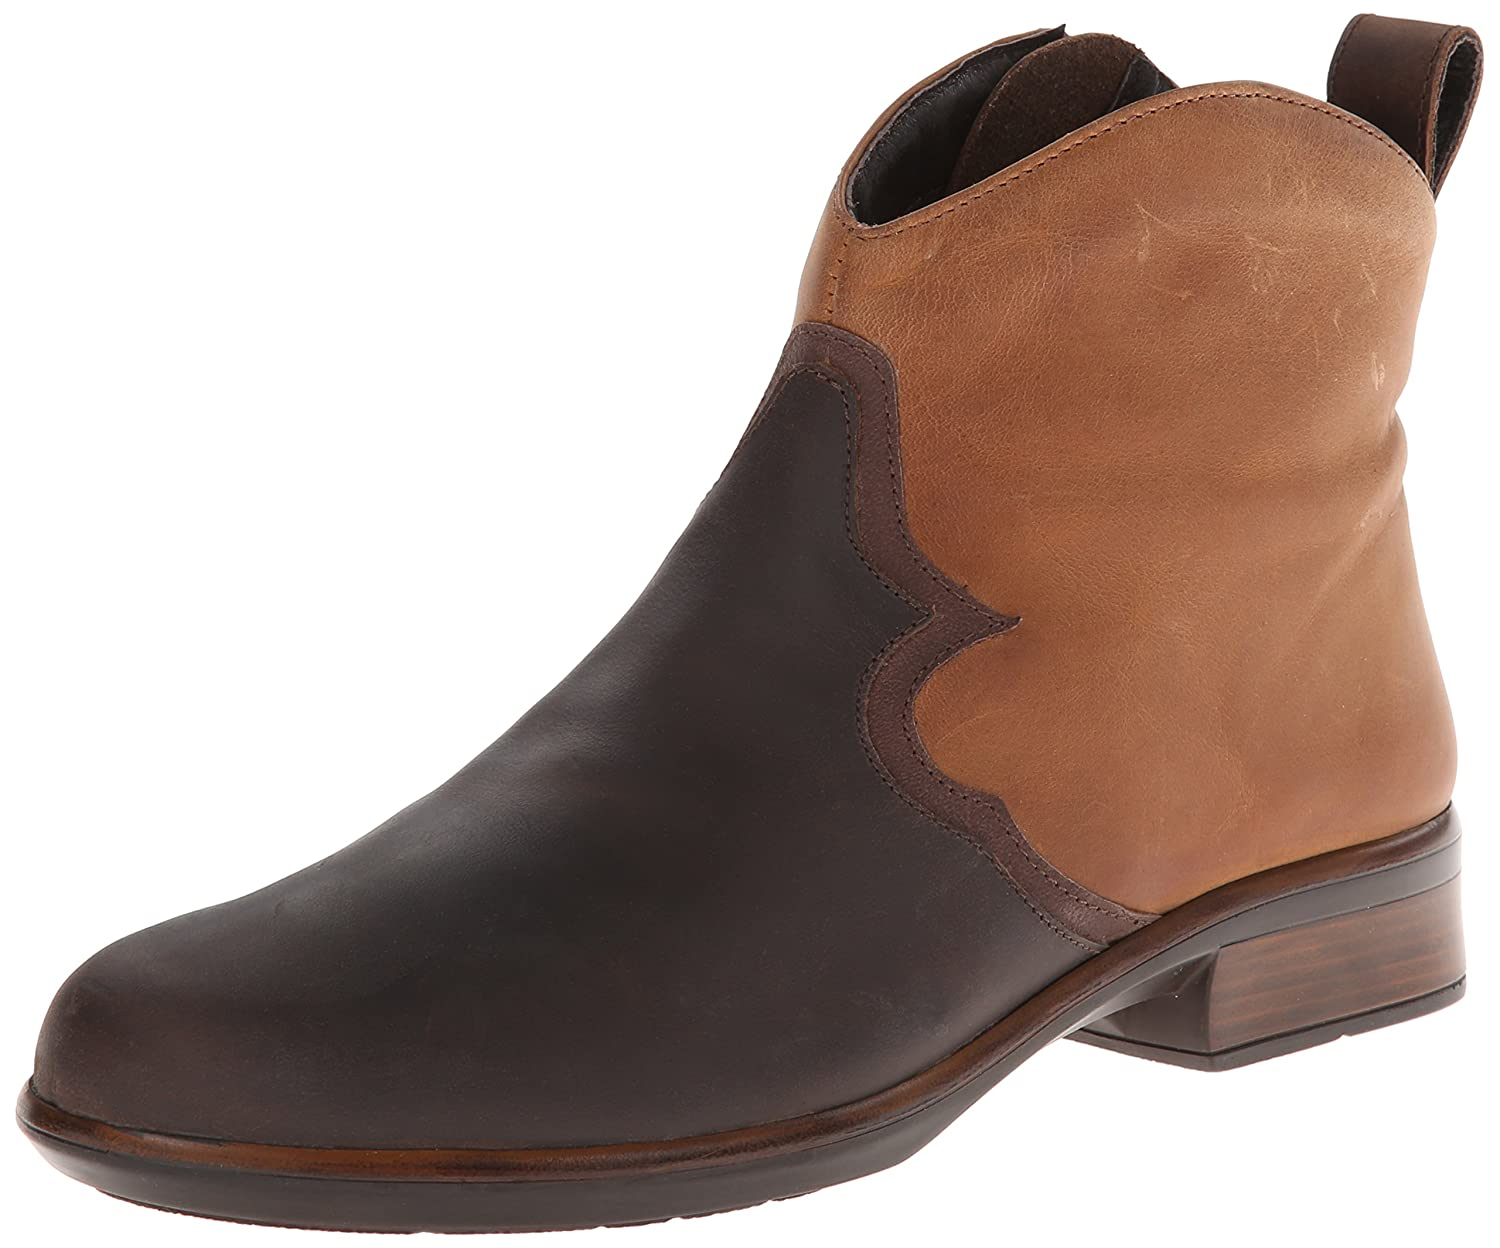 NAOT Women's Sirocco Boot B00IG9XUHW 39 EU/7.5-8 M US|Crazy Horse Leather/Saddle Brown Leather